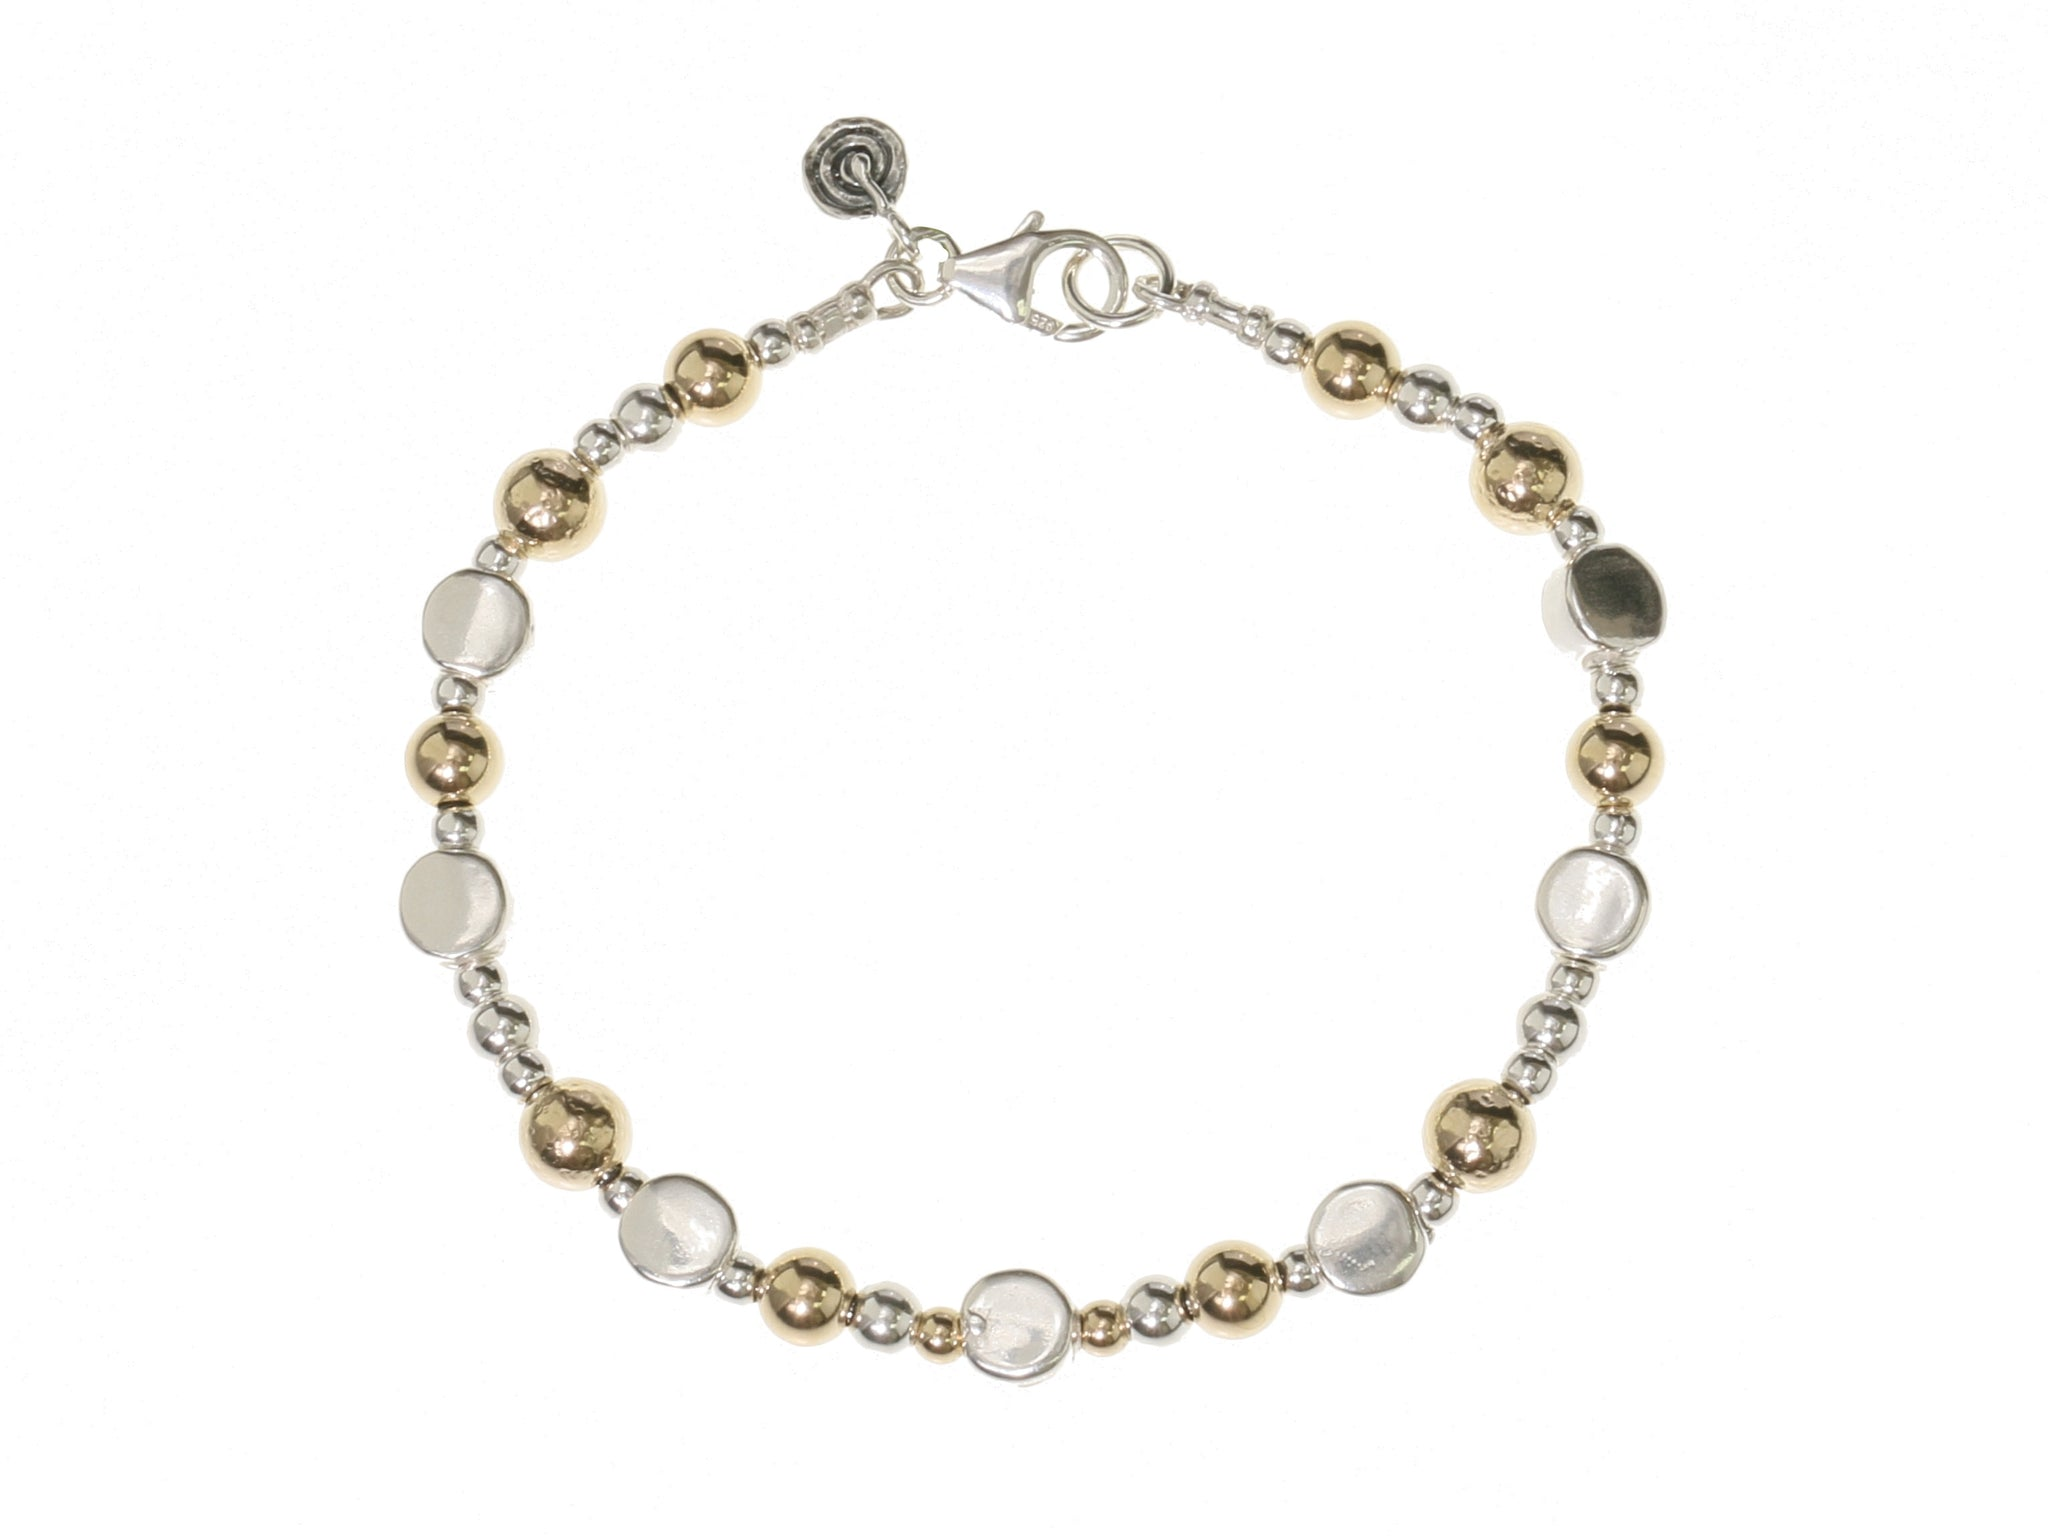 Braclet gold and silver